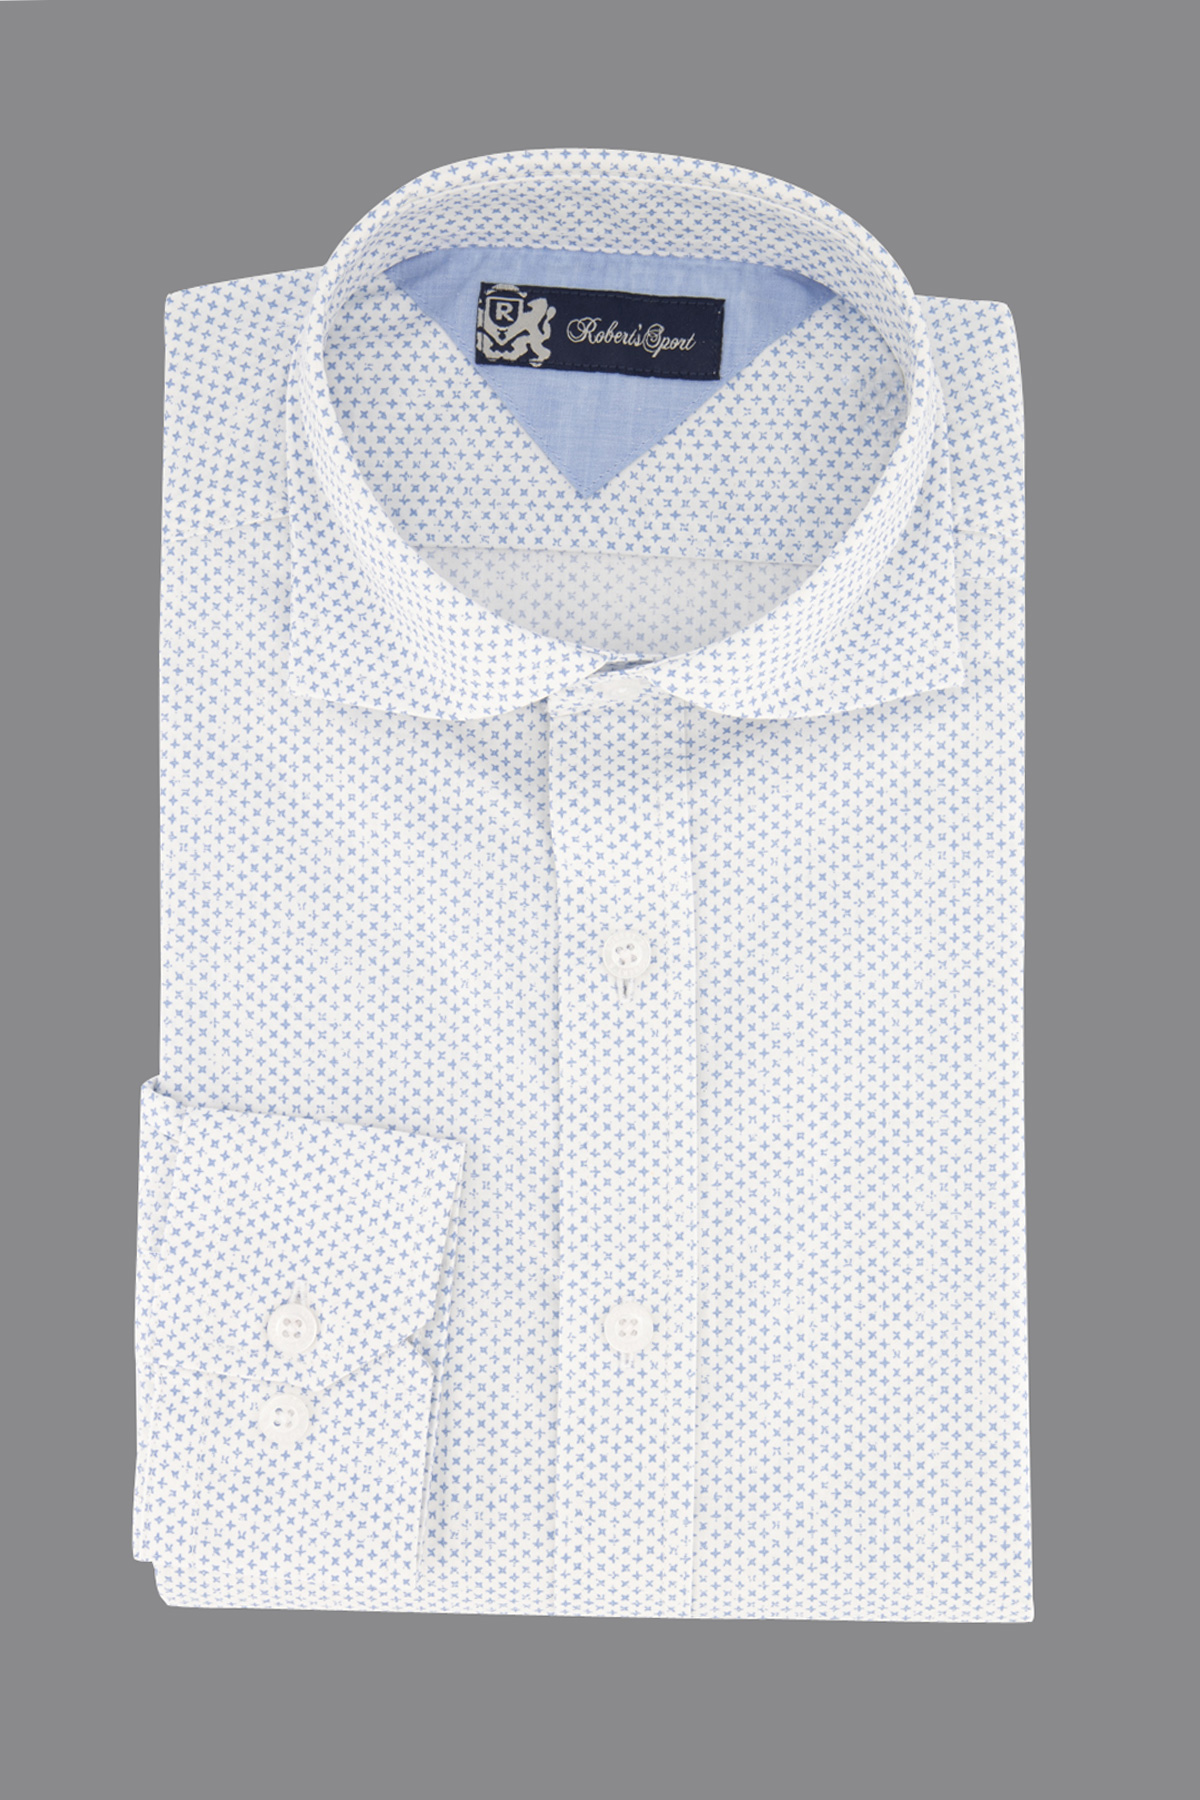 Camisa Robert´s, 100% algodón,  Regular fit, print azul.